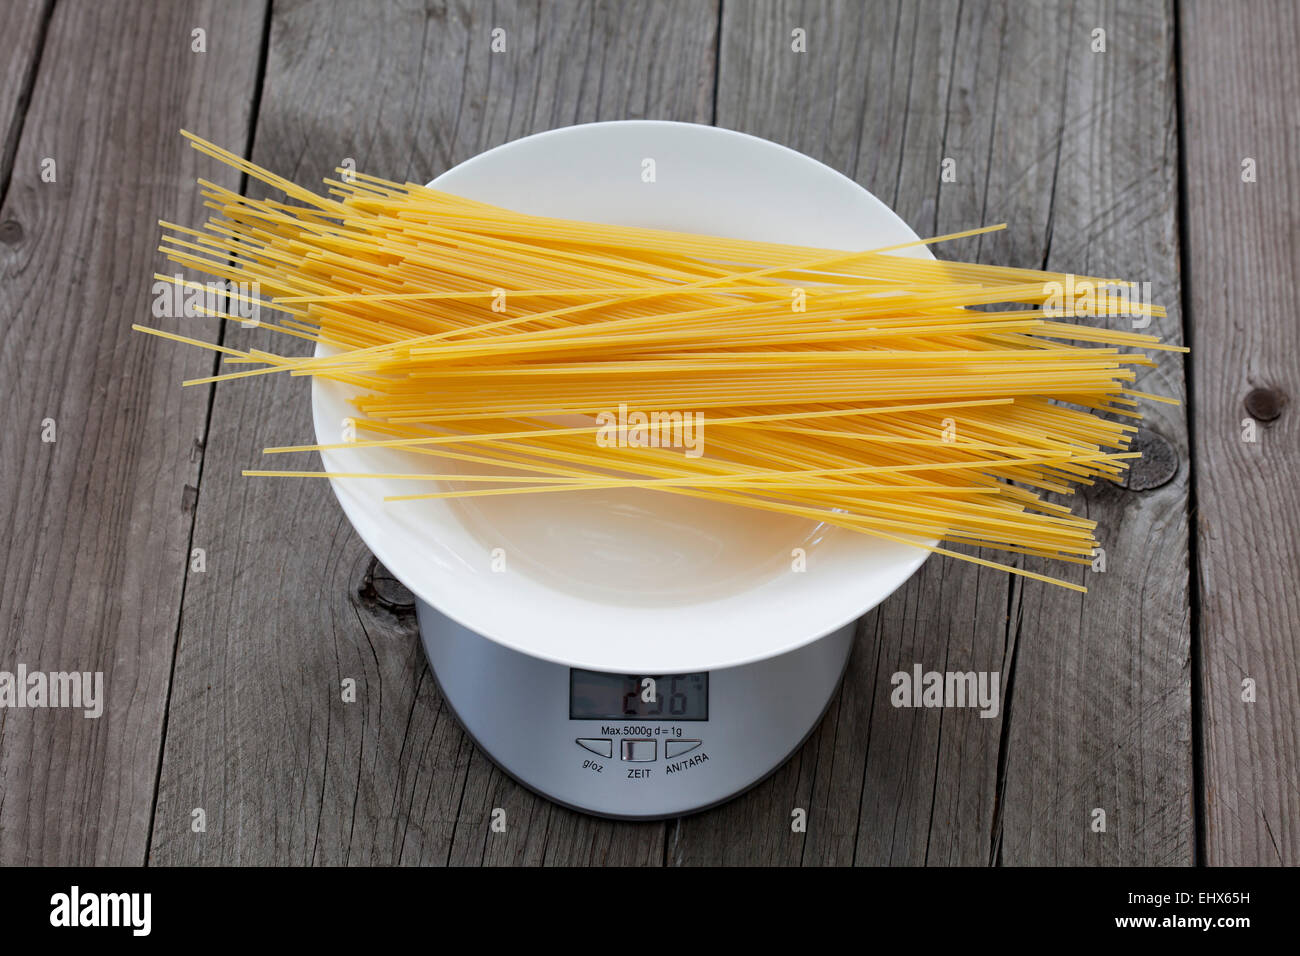 Row spaghetti on plate and scale on wood - Stock Image